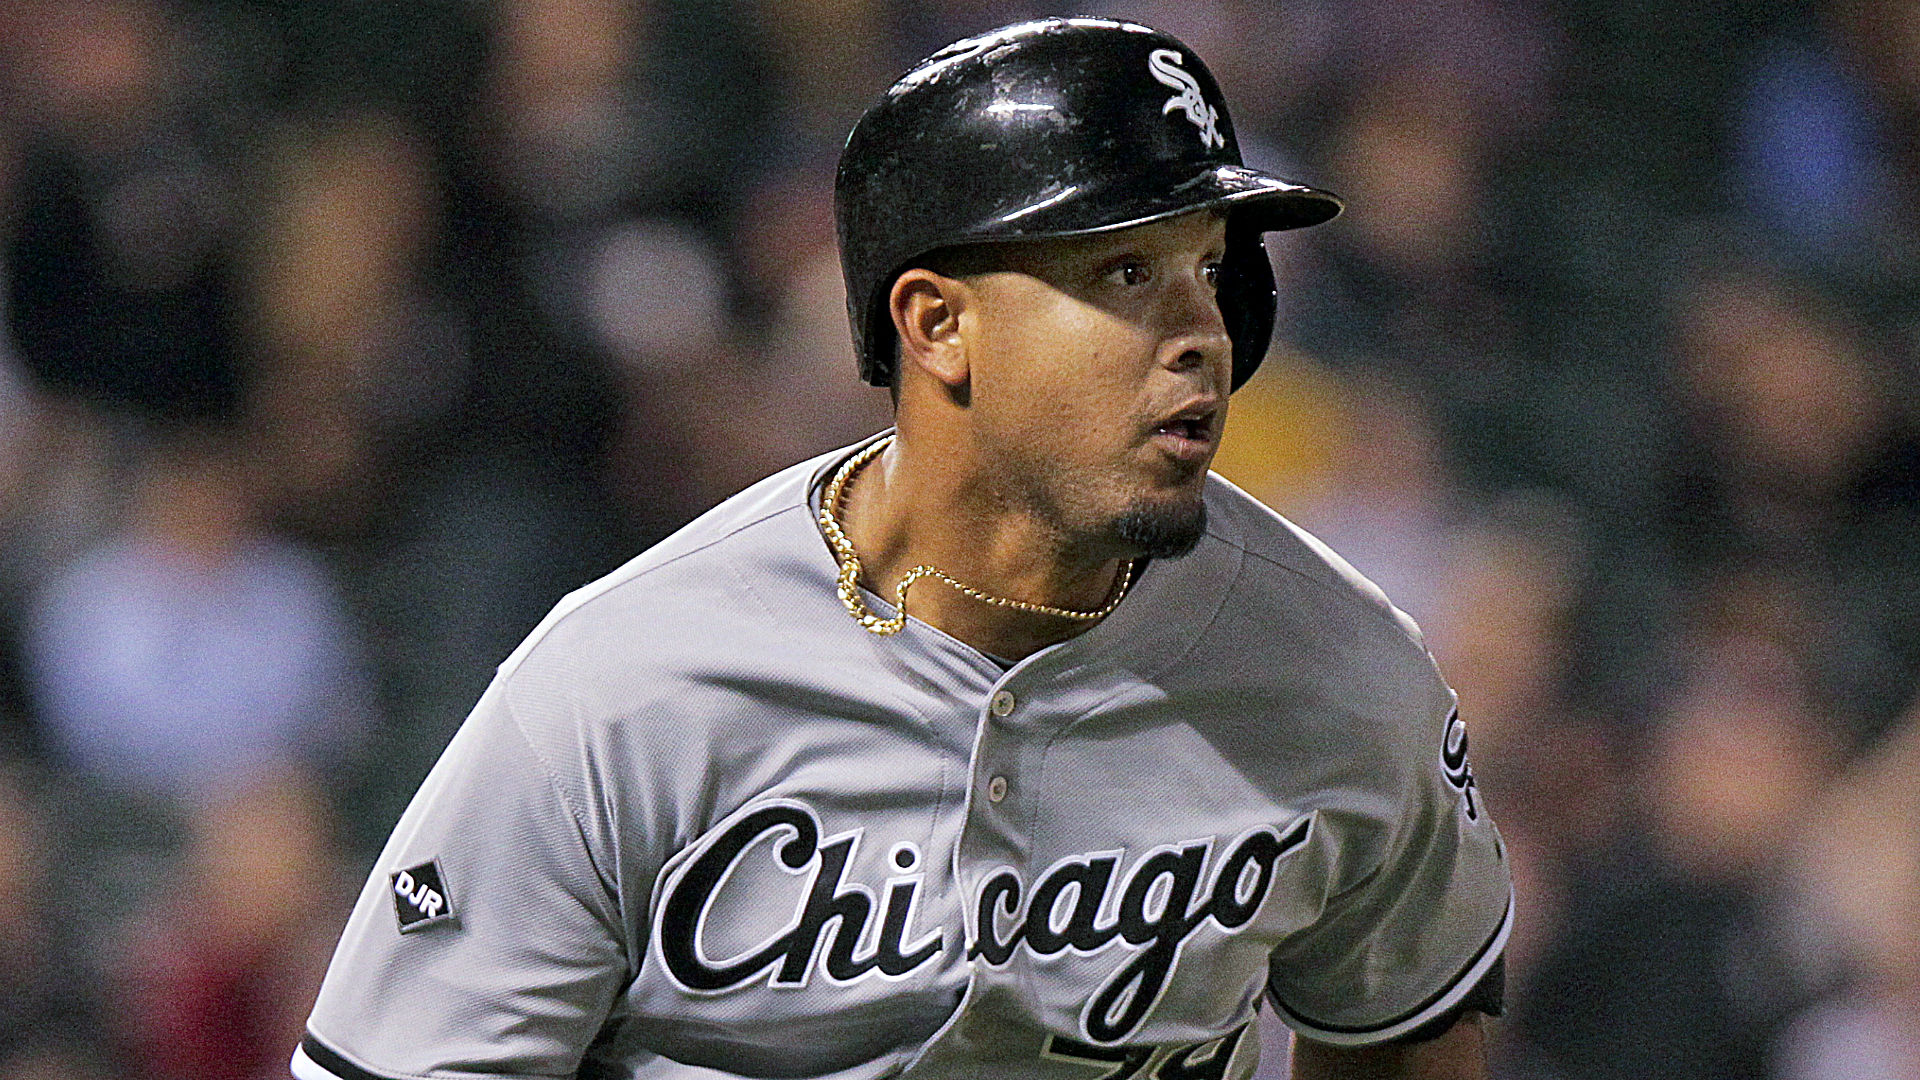 1B Rankings: Abreu already challenges for No. 1